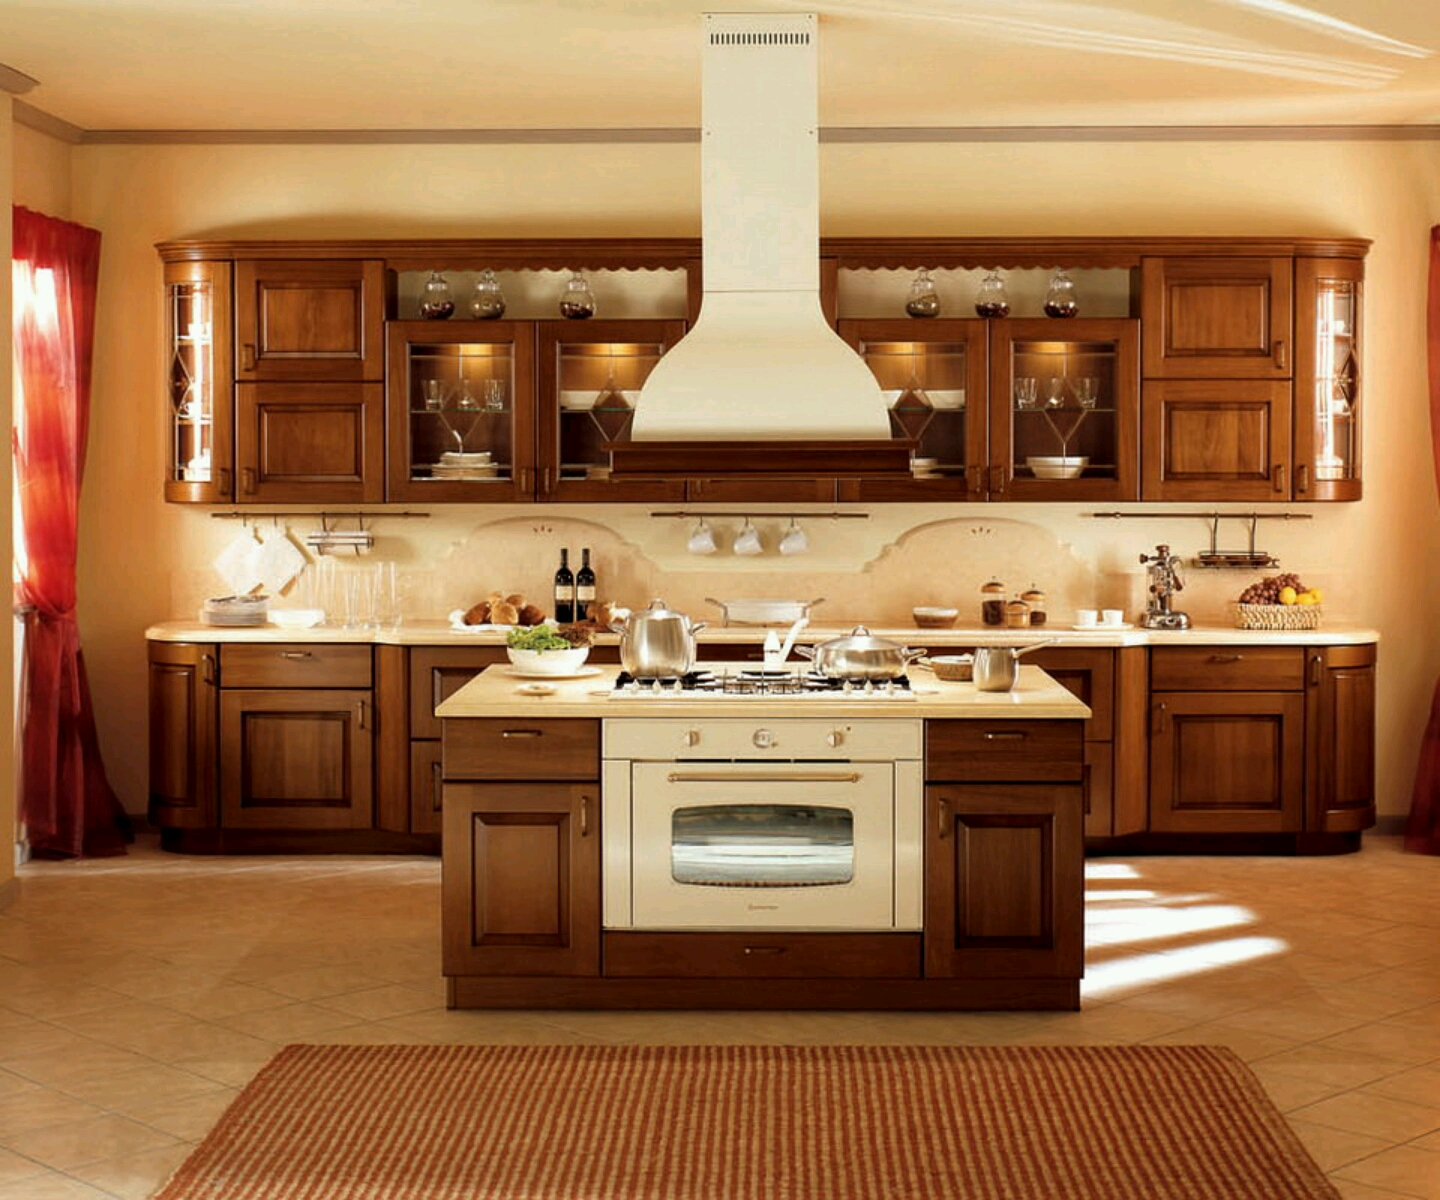 New home designs latest modern kitchen cabinets designs for Best kitchen cabinets